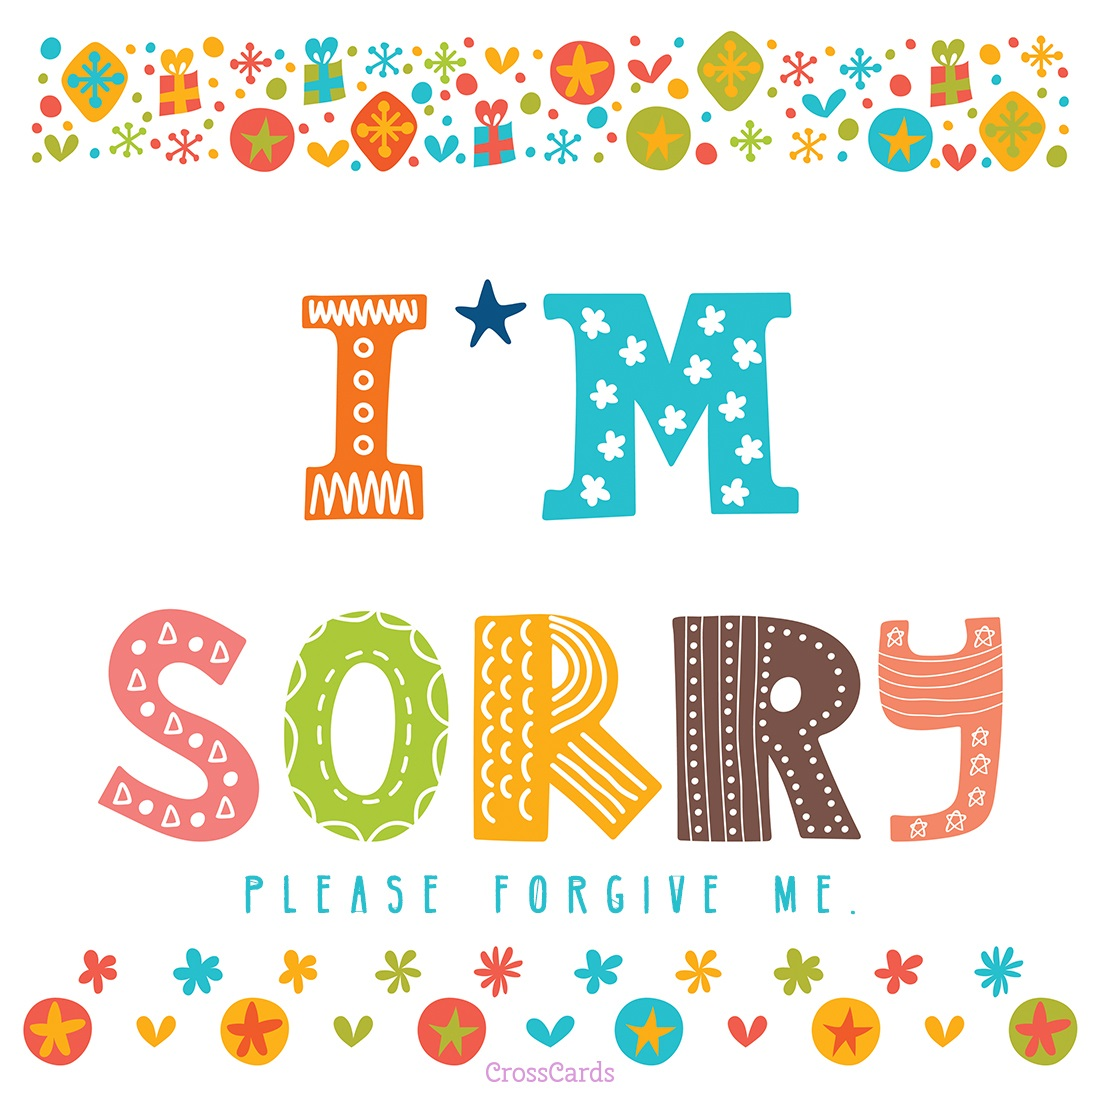 I'm Sorry - Forgive Me ecard, online card